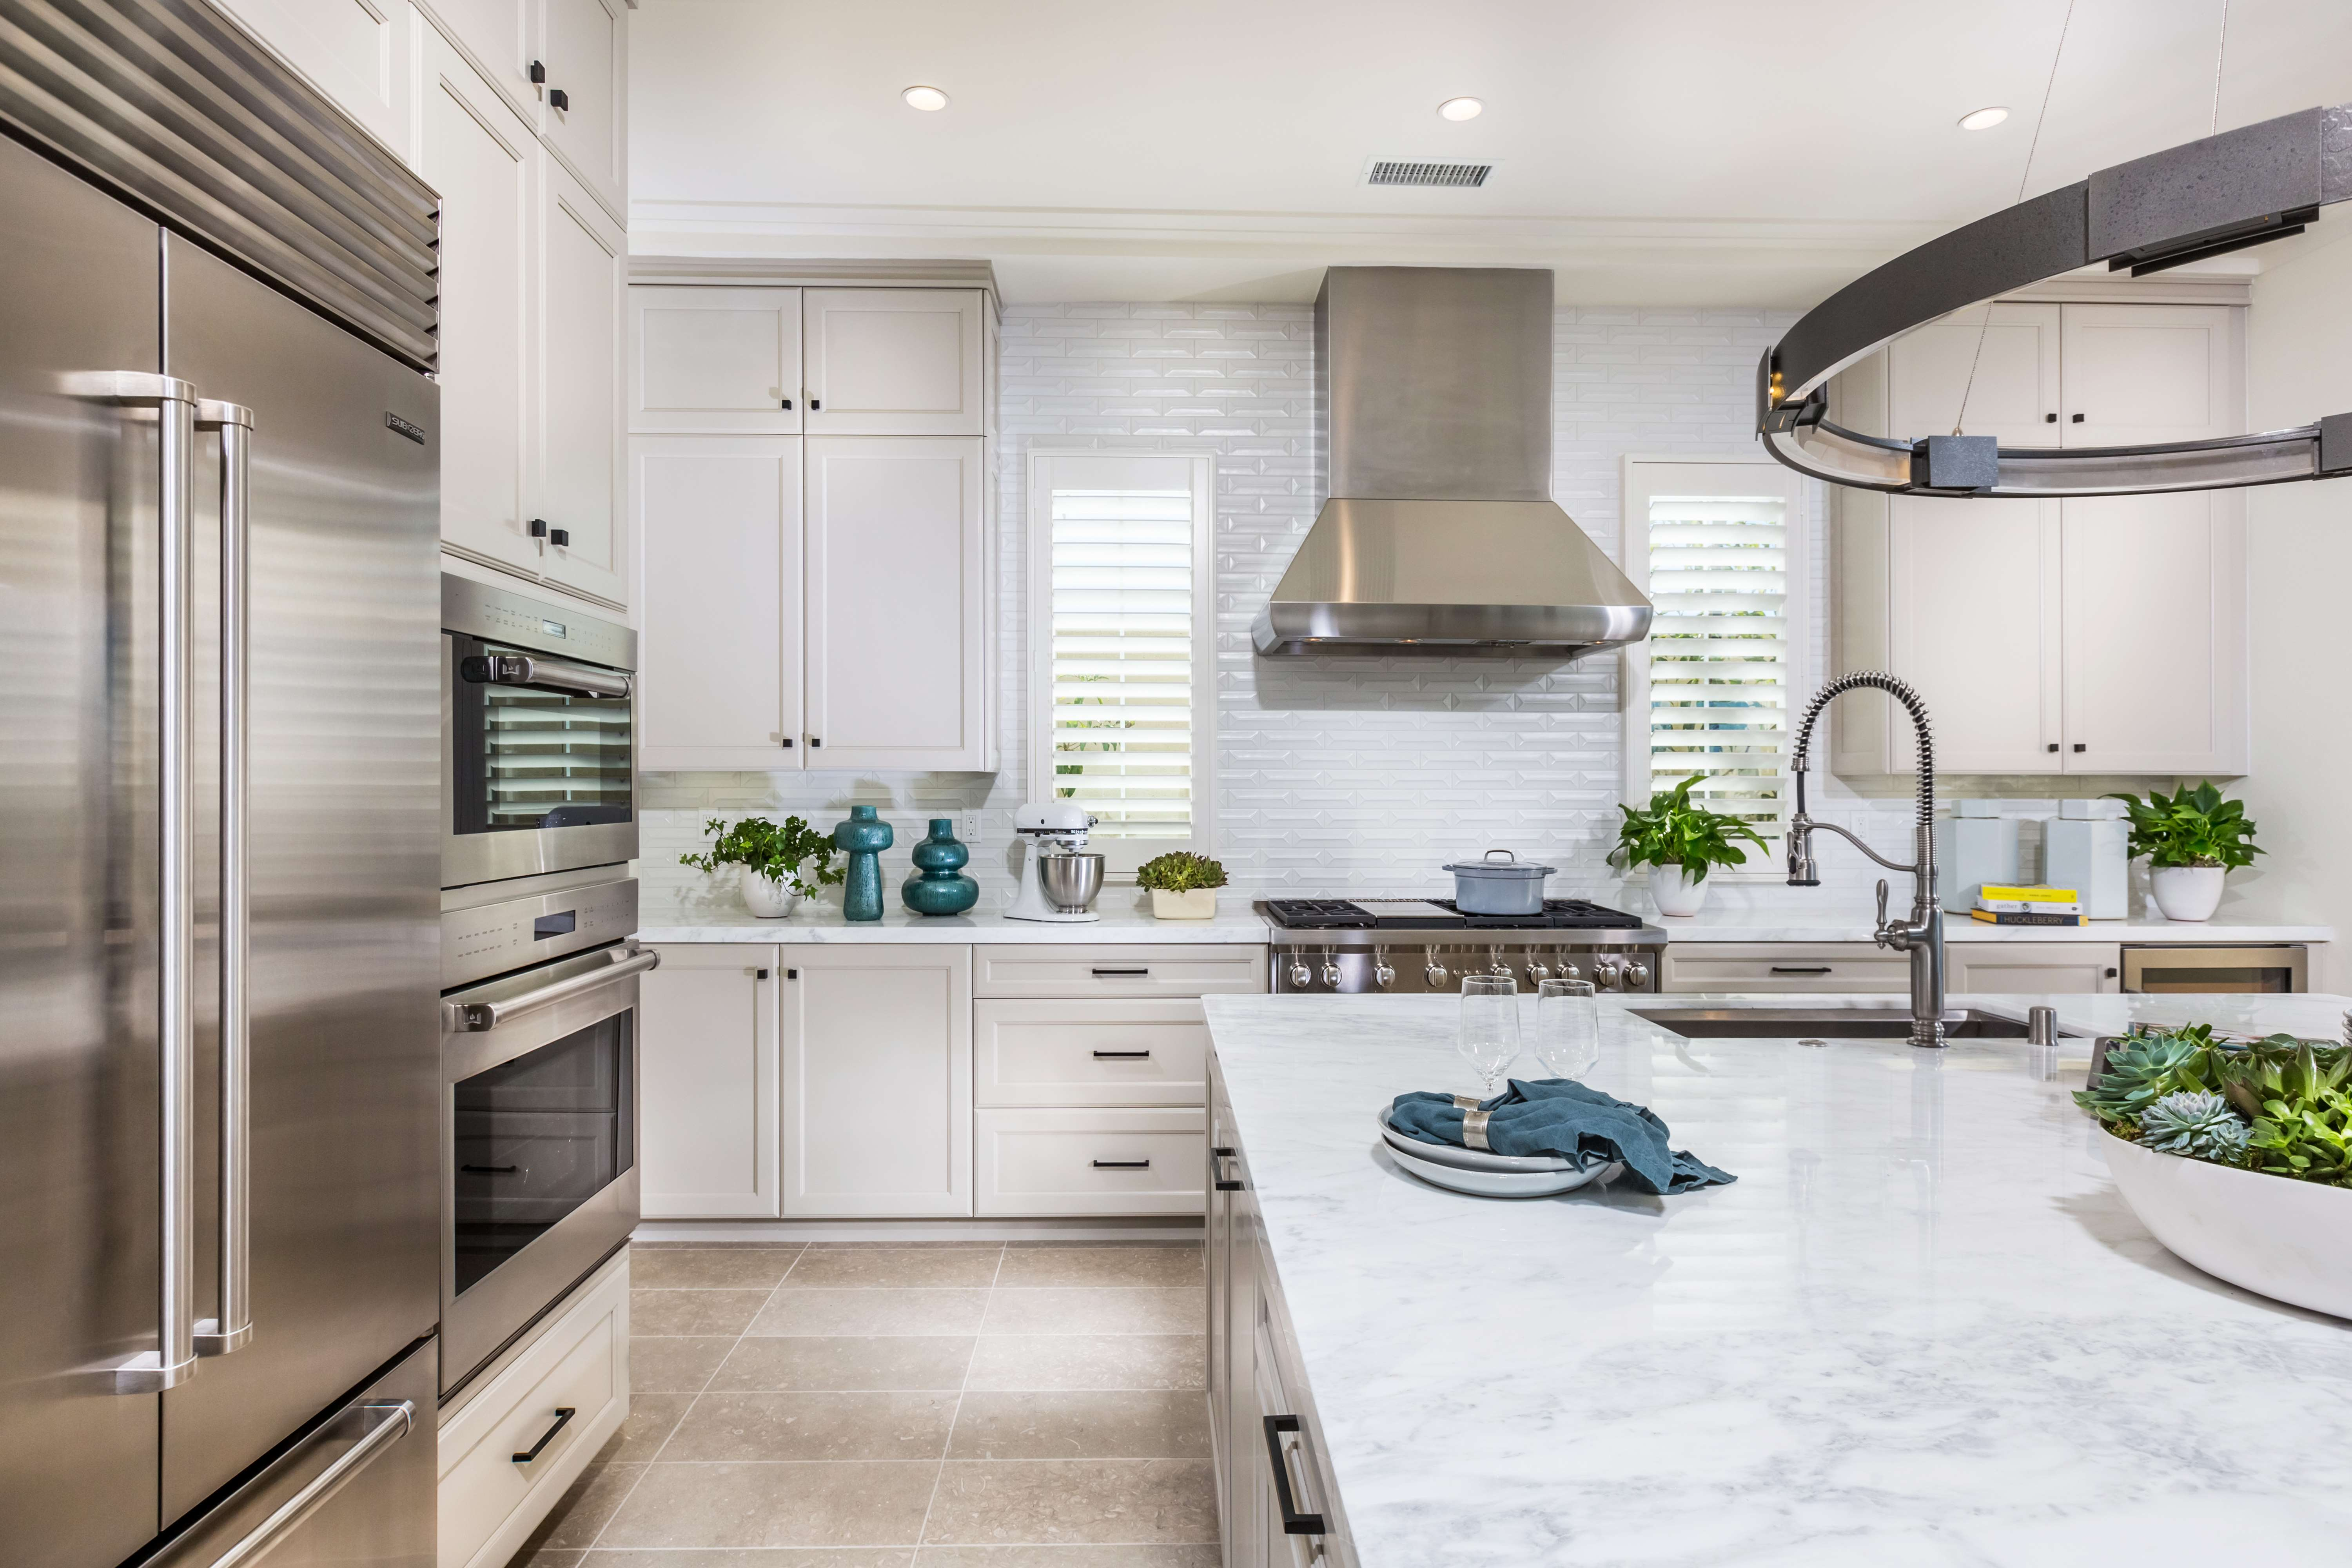 Kitchen Detail at Terra Residence 3 in Irvine